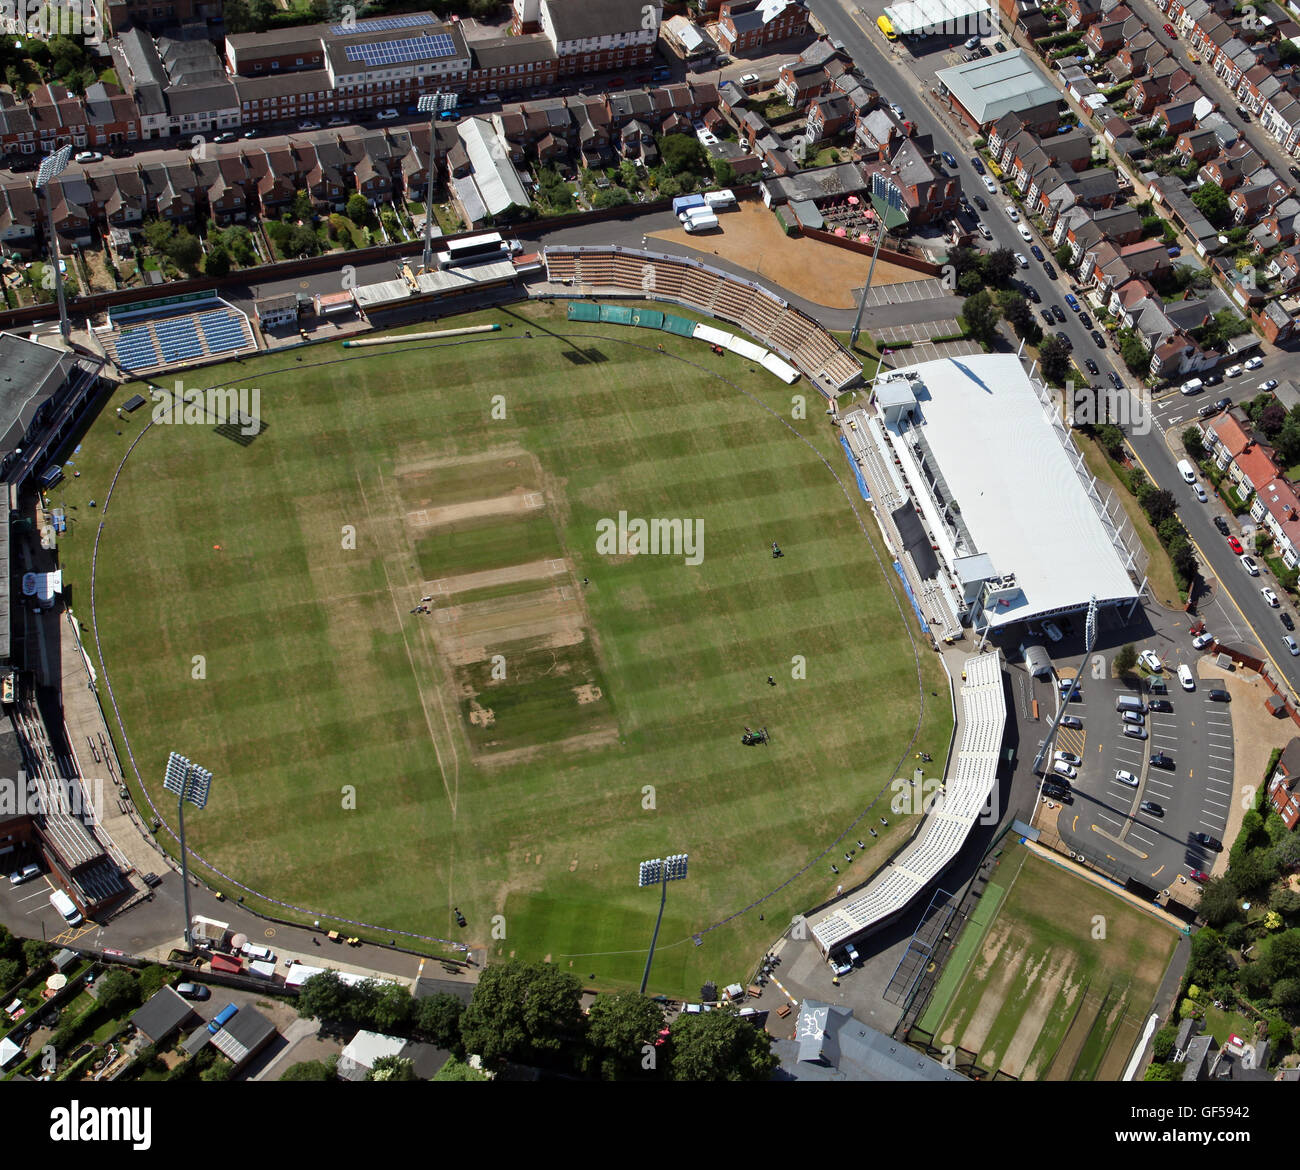 bristol helicopter with Stock Photo Aerial View Of The County Ground Home Of North Tonshire County Cricket 112598978 on Stock Photo Aerial View Of The County Ground Home Of North tonshire County Cricket 112598978 furthermore About further Breastfeeding And Time Magazine also Polikarpov I 16 Type 24 Profipack 785 P besides Cutaway.